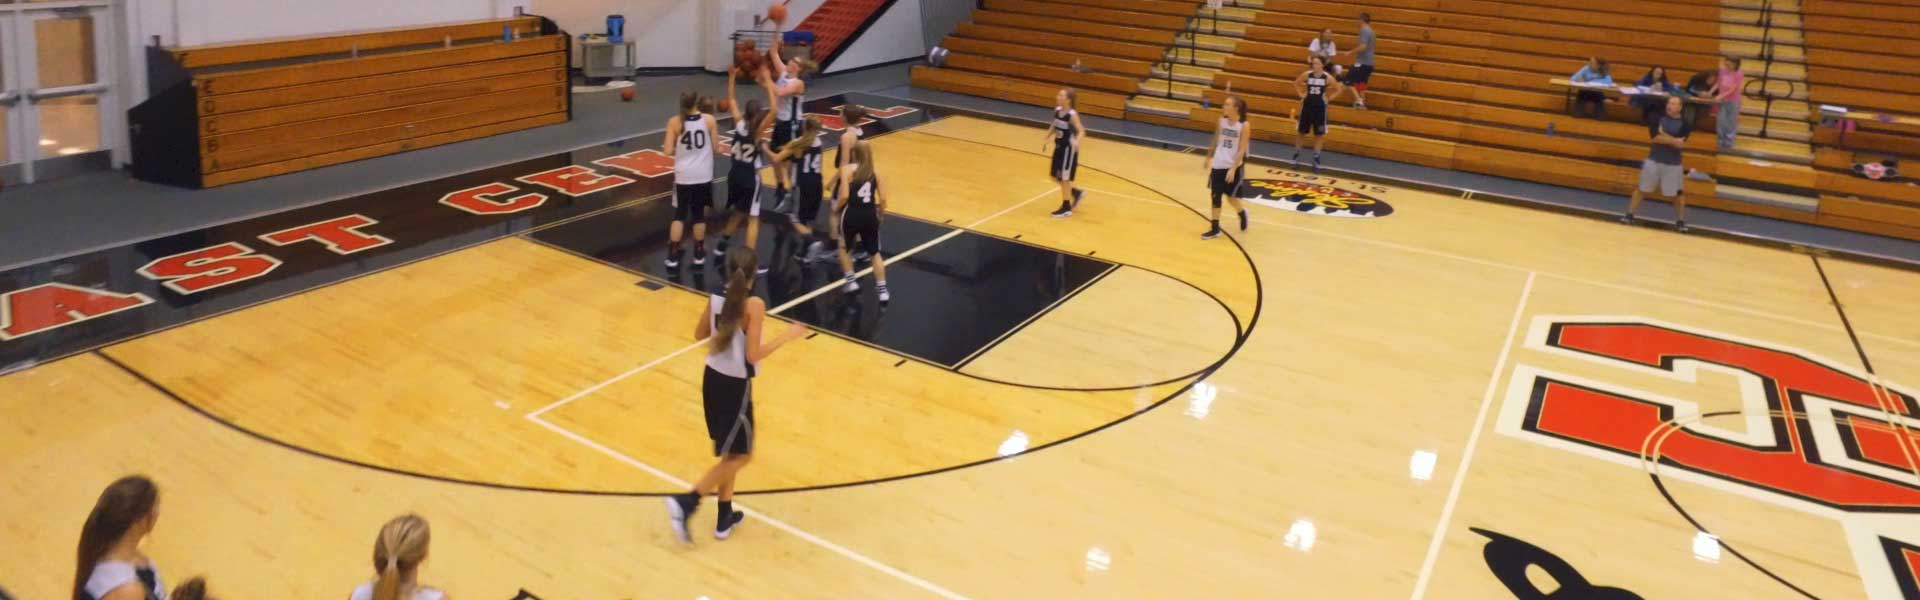 East Central High School Girls Basketball Practice